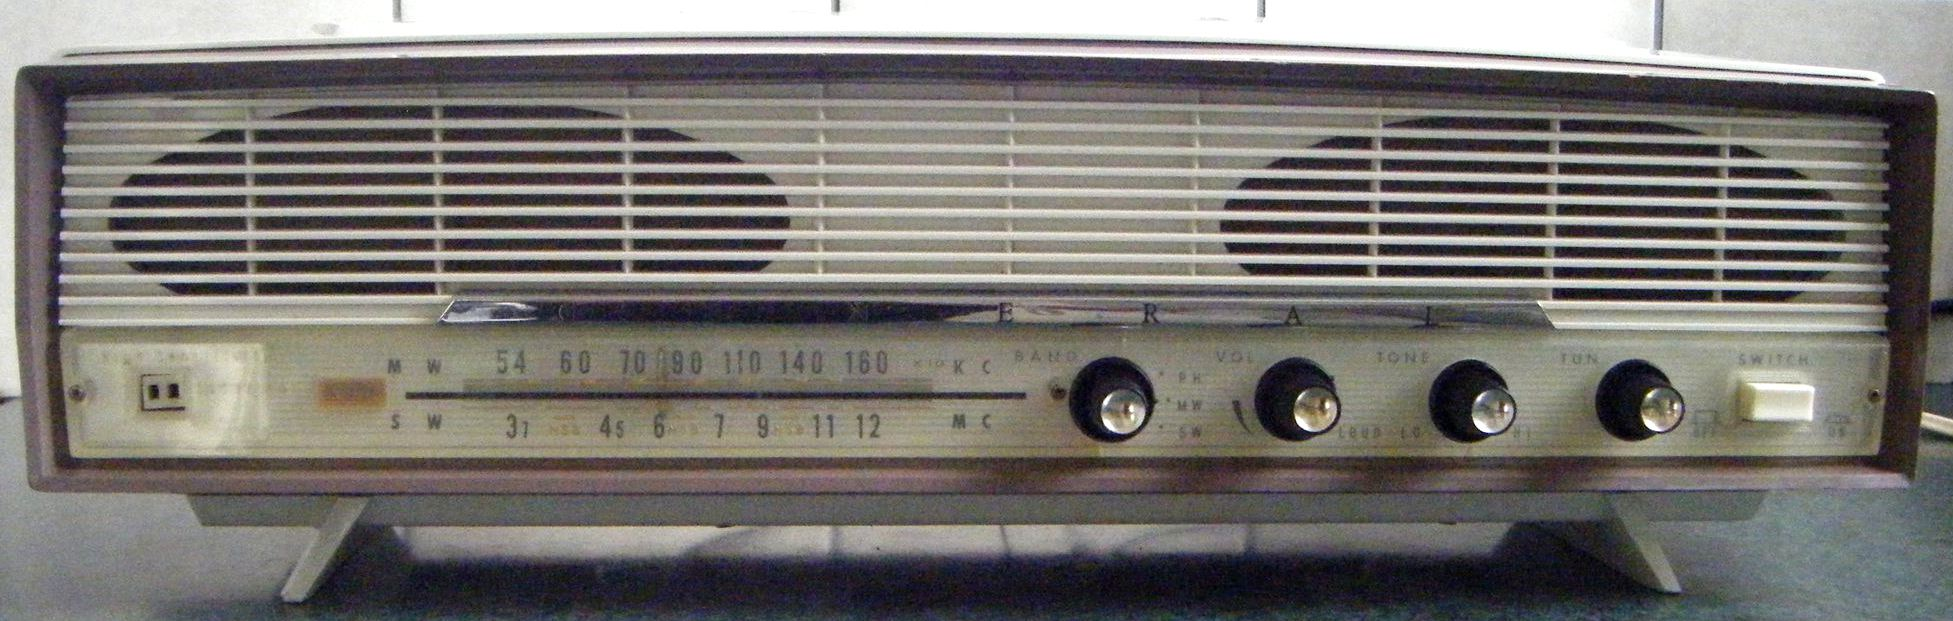 NZ Vintage Radio - General 'Gordon' 5MA-826